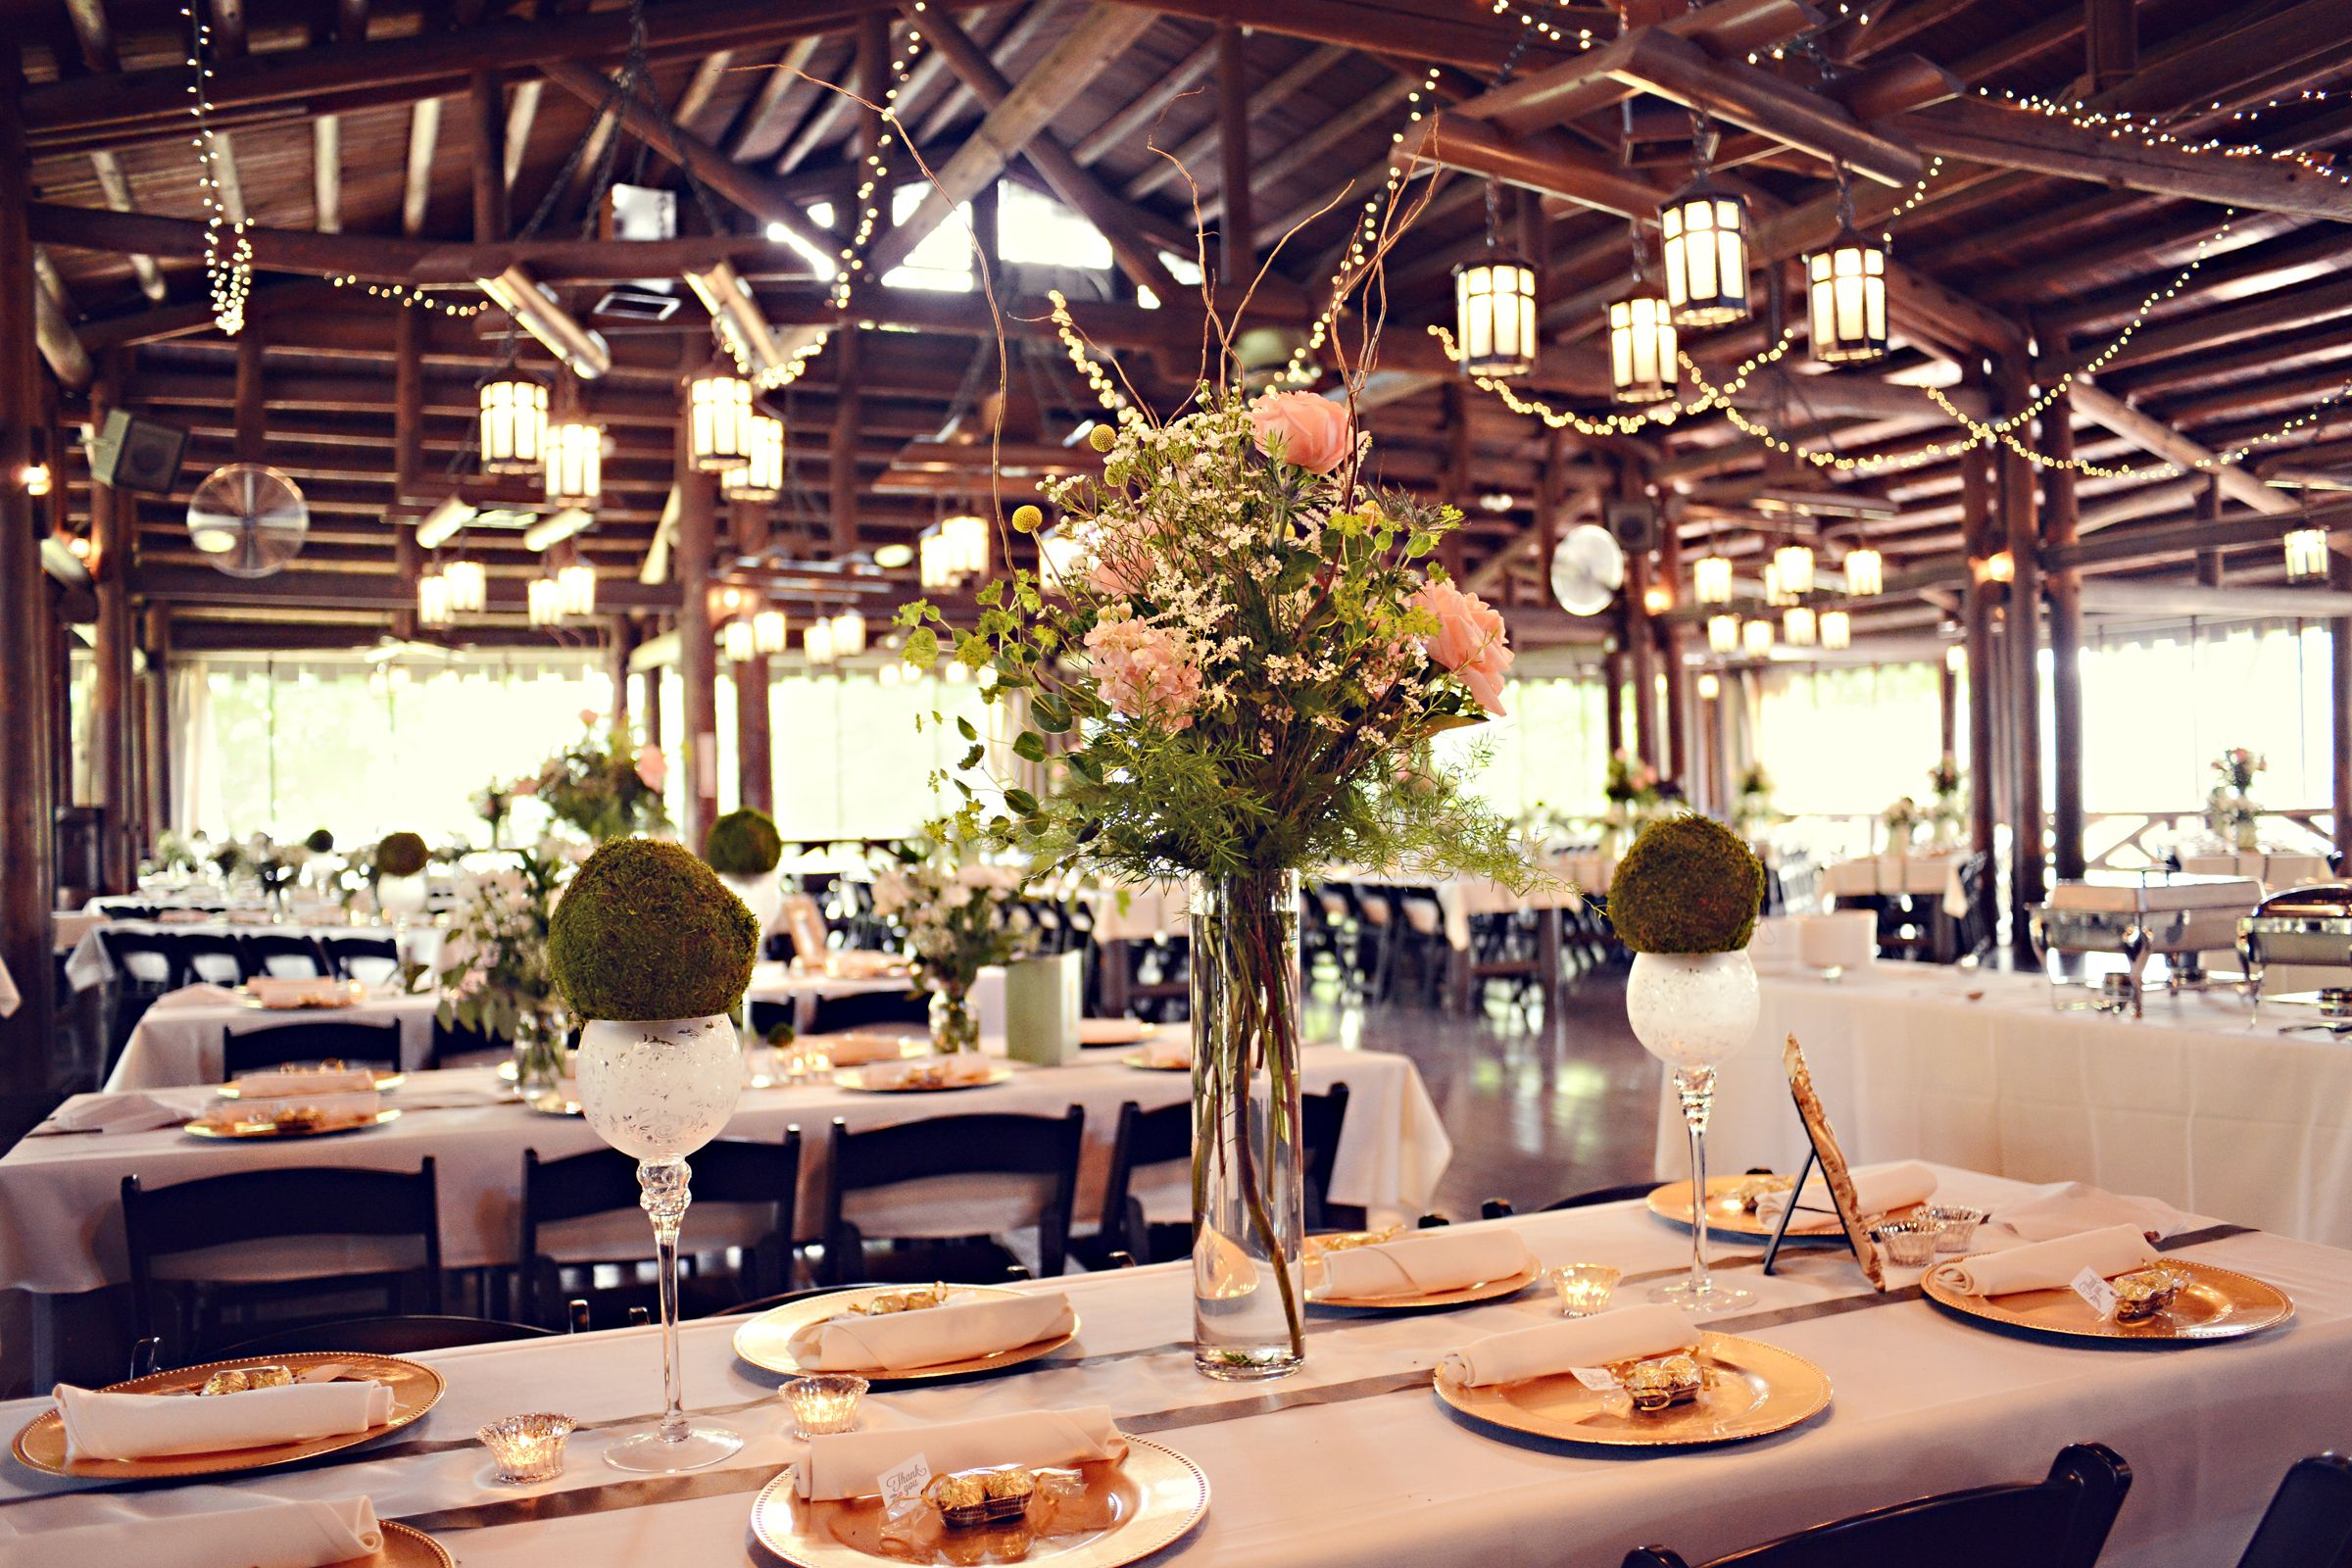 Rustic Wedding Reception At Hoover Park's Beautiful Barn